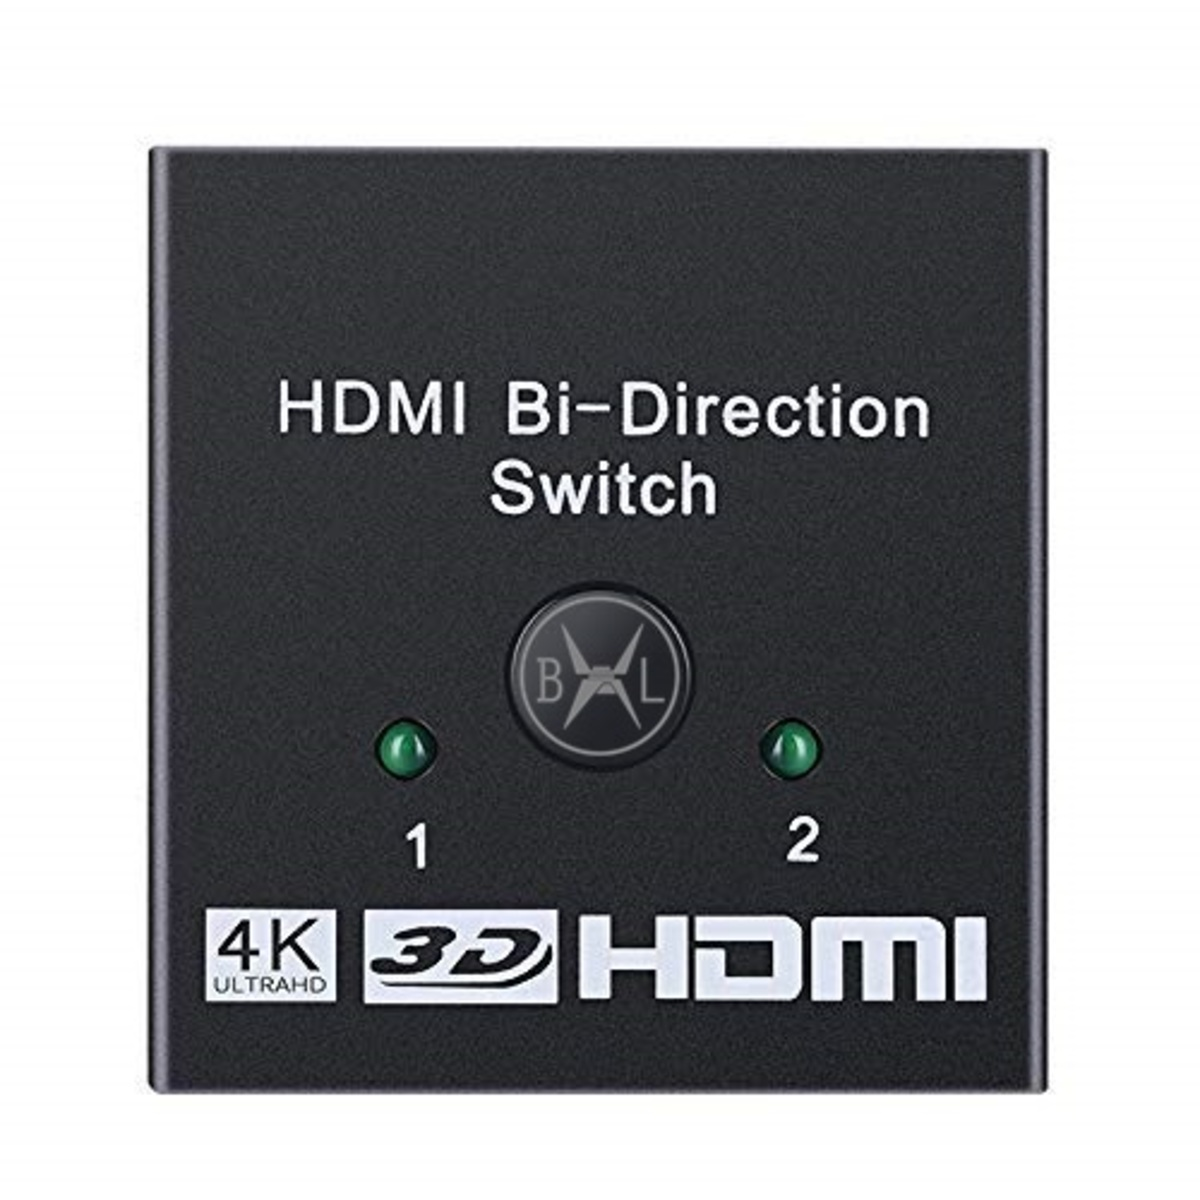 Bennlife HDMI 2.0 Bi- Direction Switch with Audio Output 1080p 4K